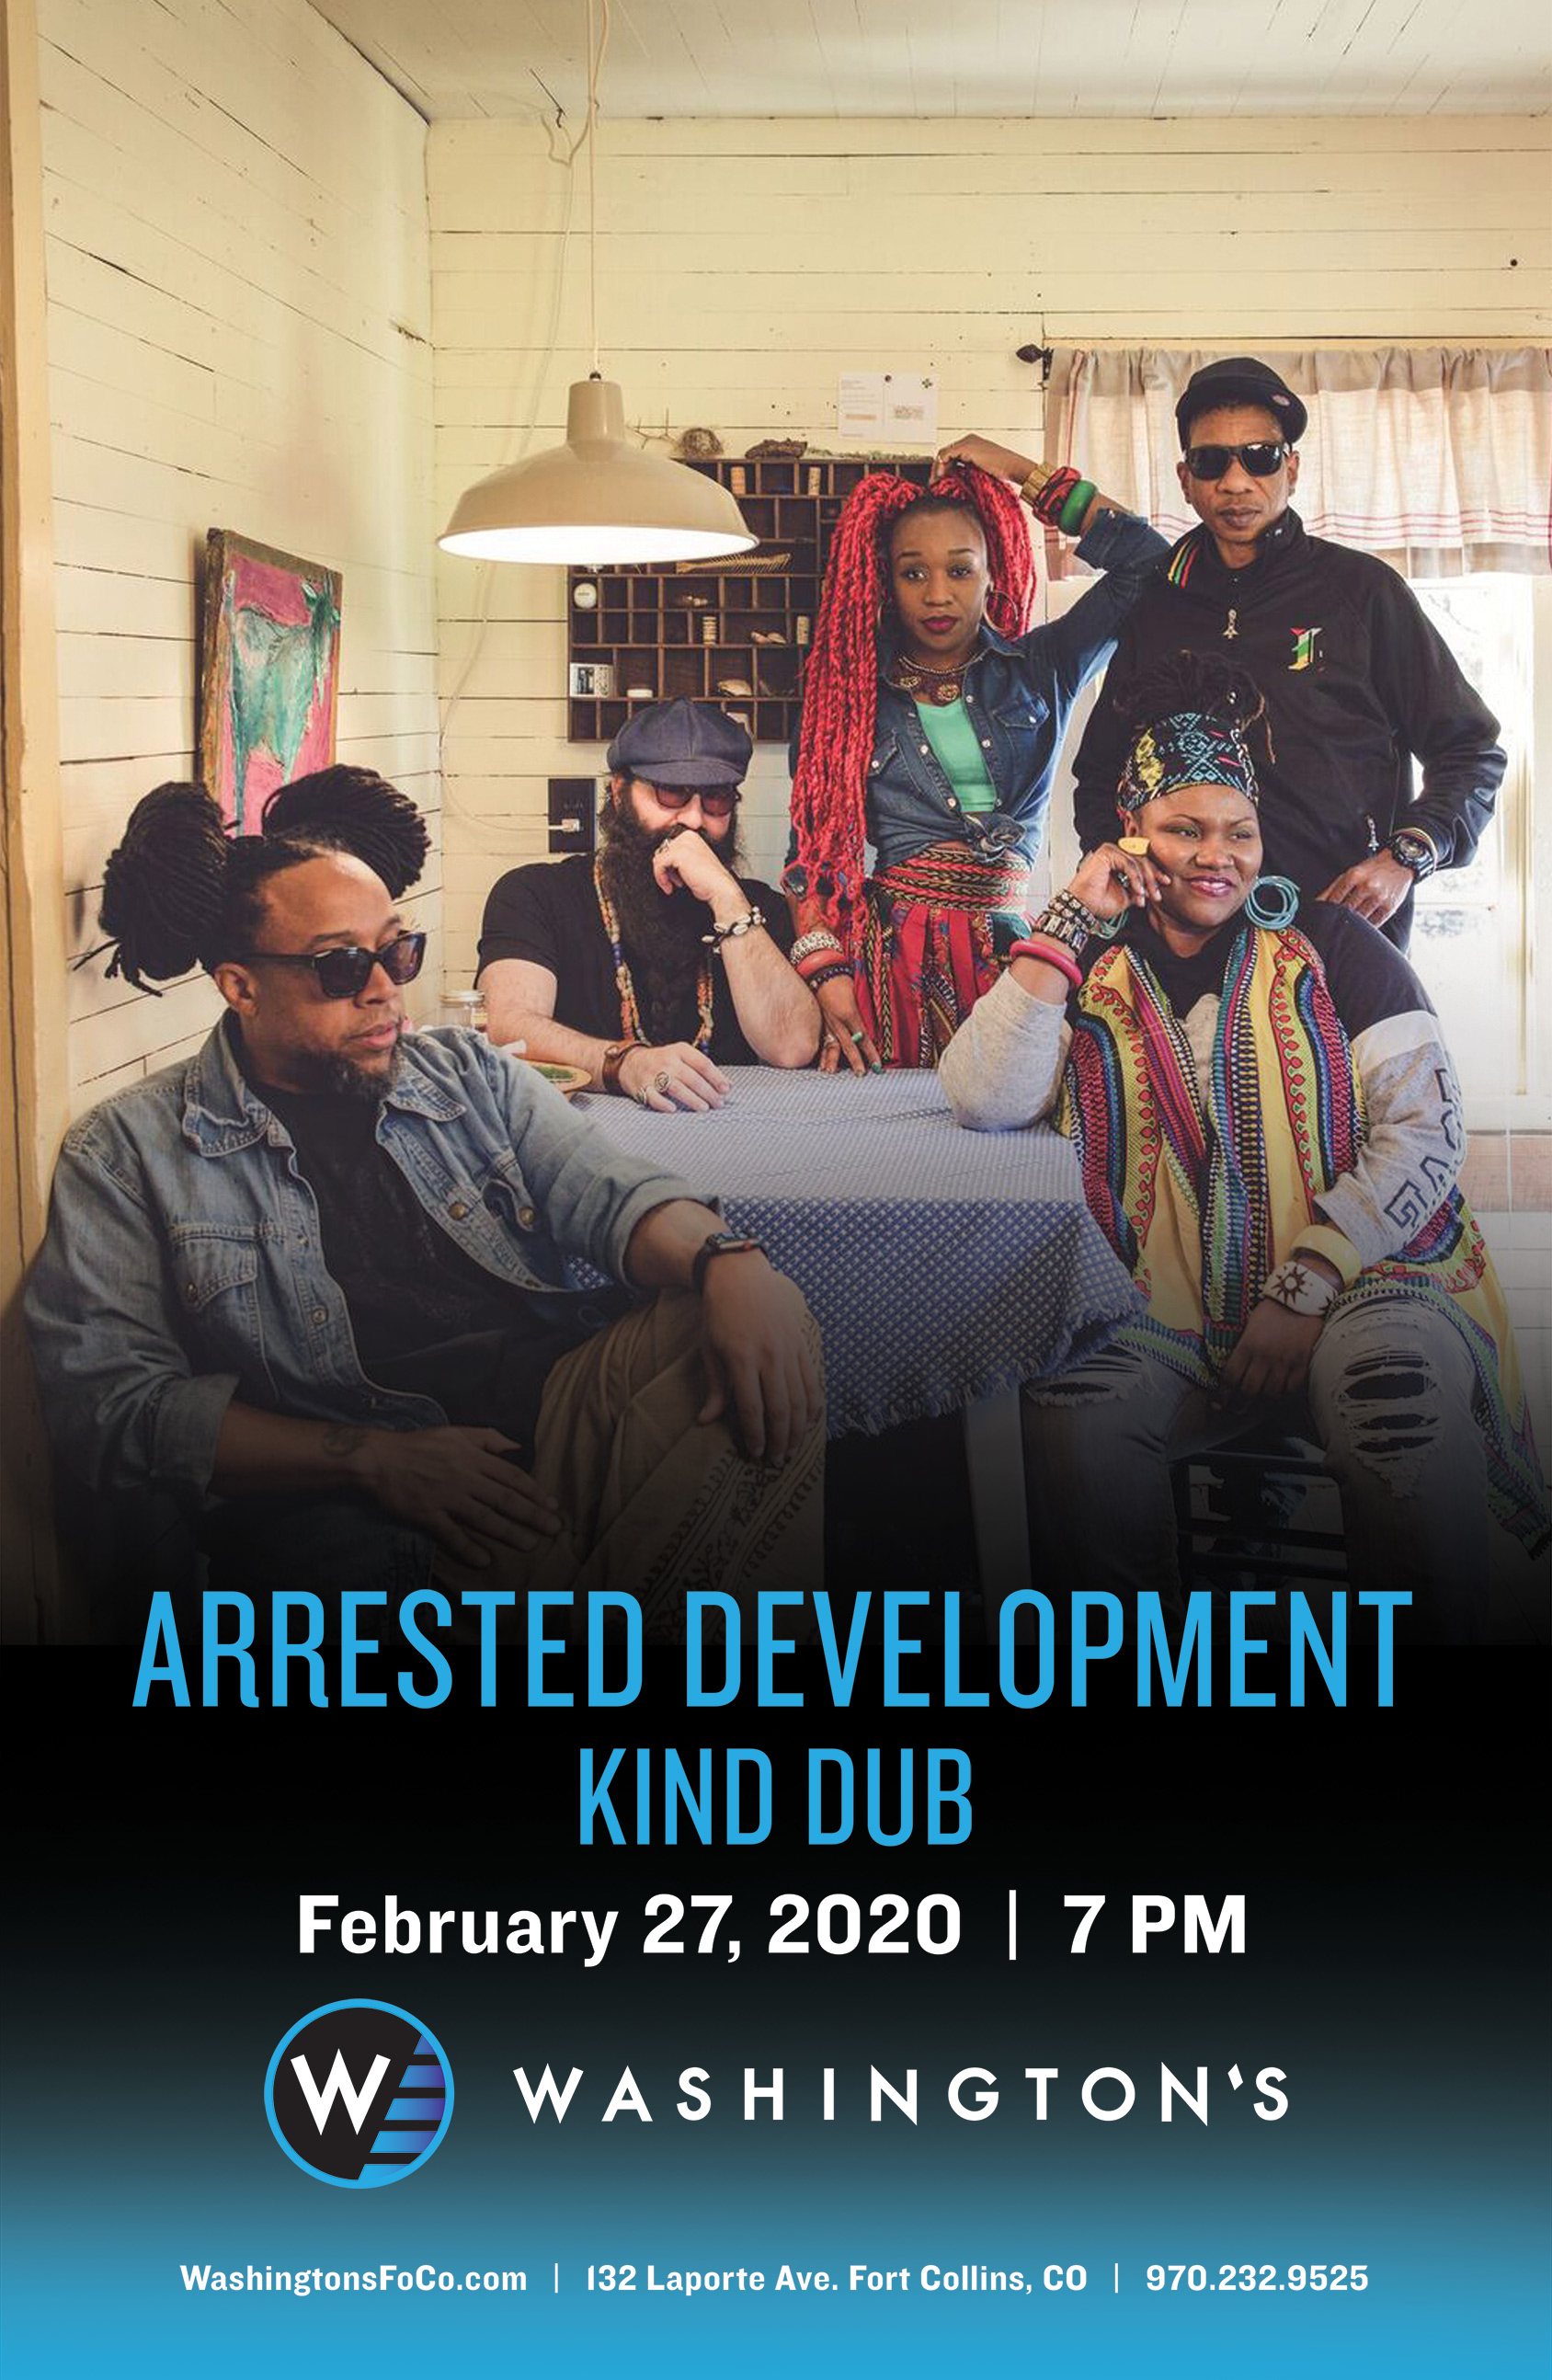 Wash-Poster-Arrested Development